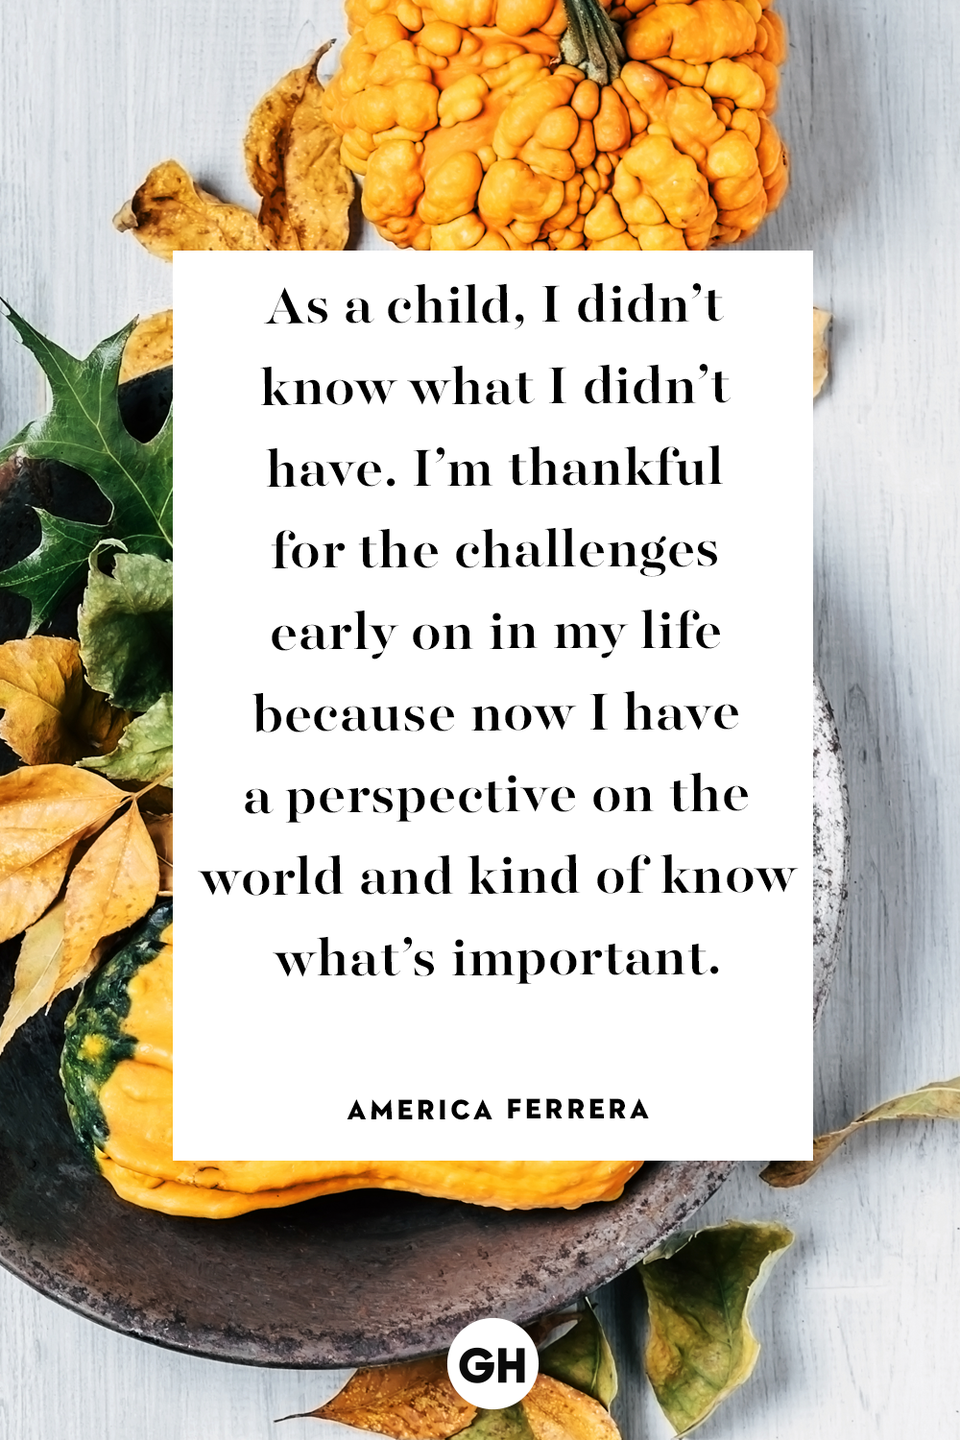 <p>As a child, I didn't know what I didn't have. I'm thankful for the challenges early on in my life because now I have a perspective on the world and kind of know what's important.</p>